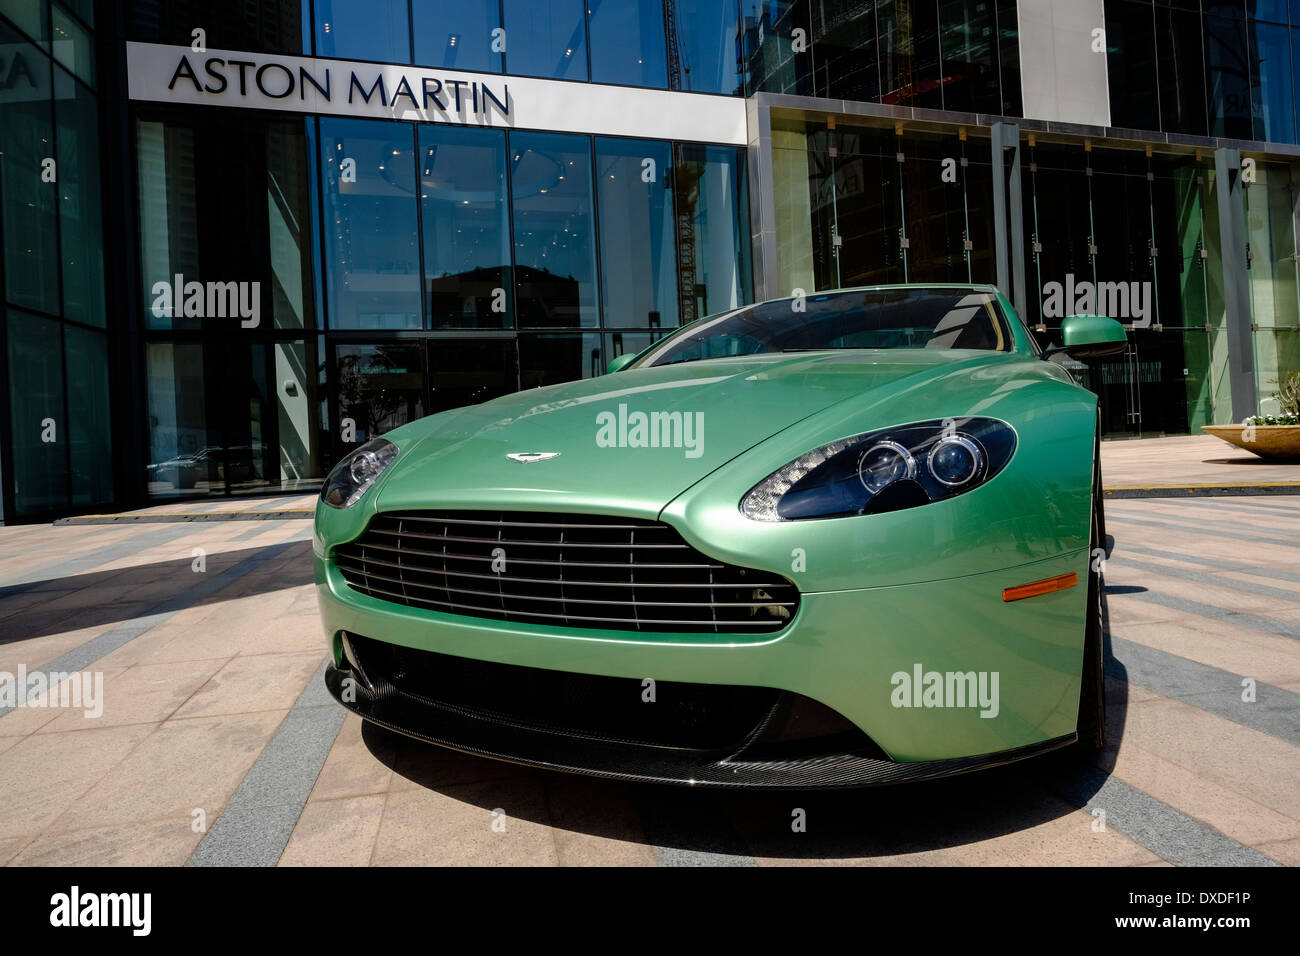 Showroom of Aston Martin luxury cars in Dubai United Arab Emirates - Stock Image